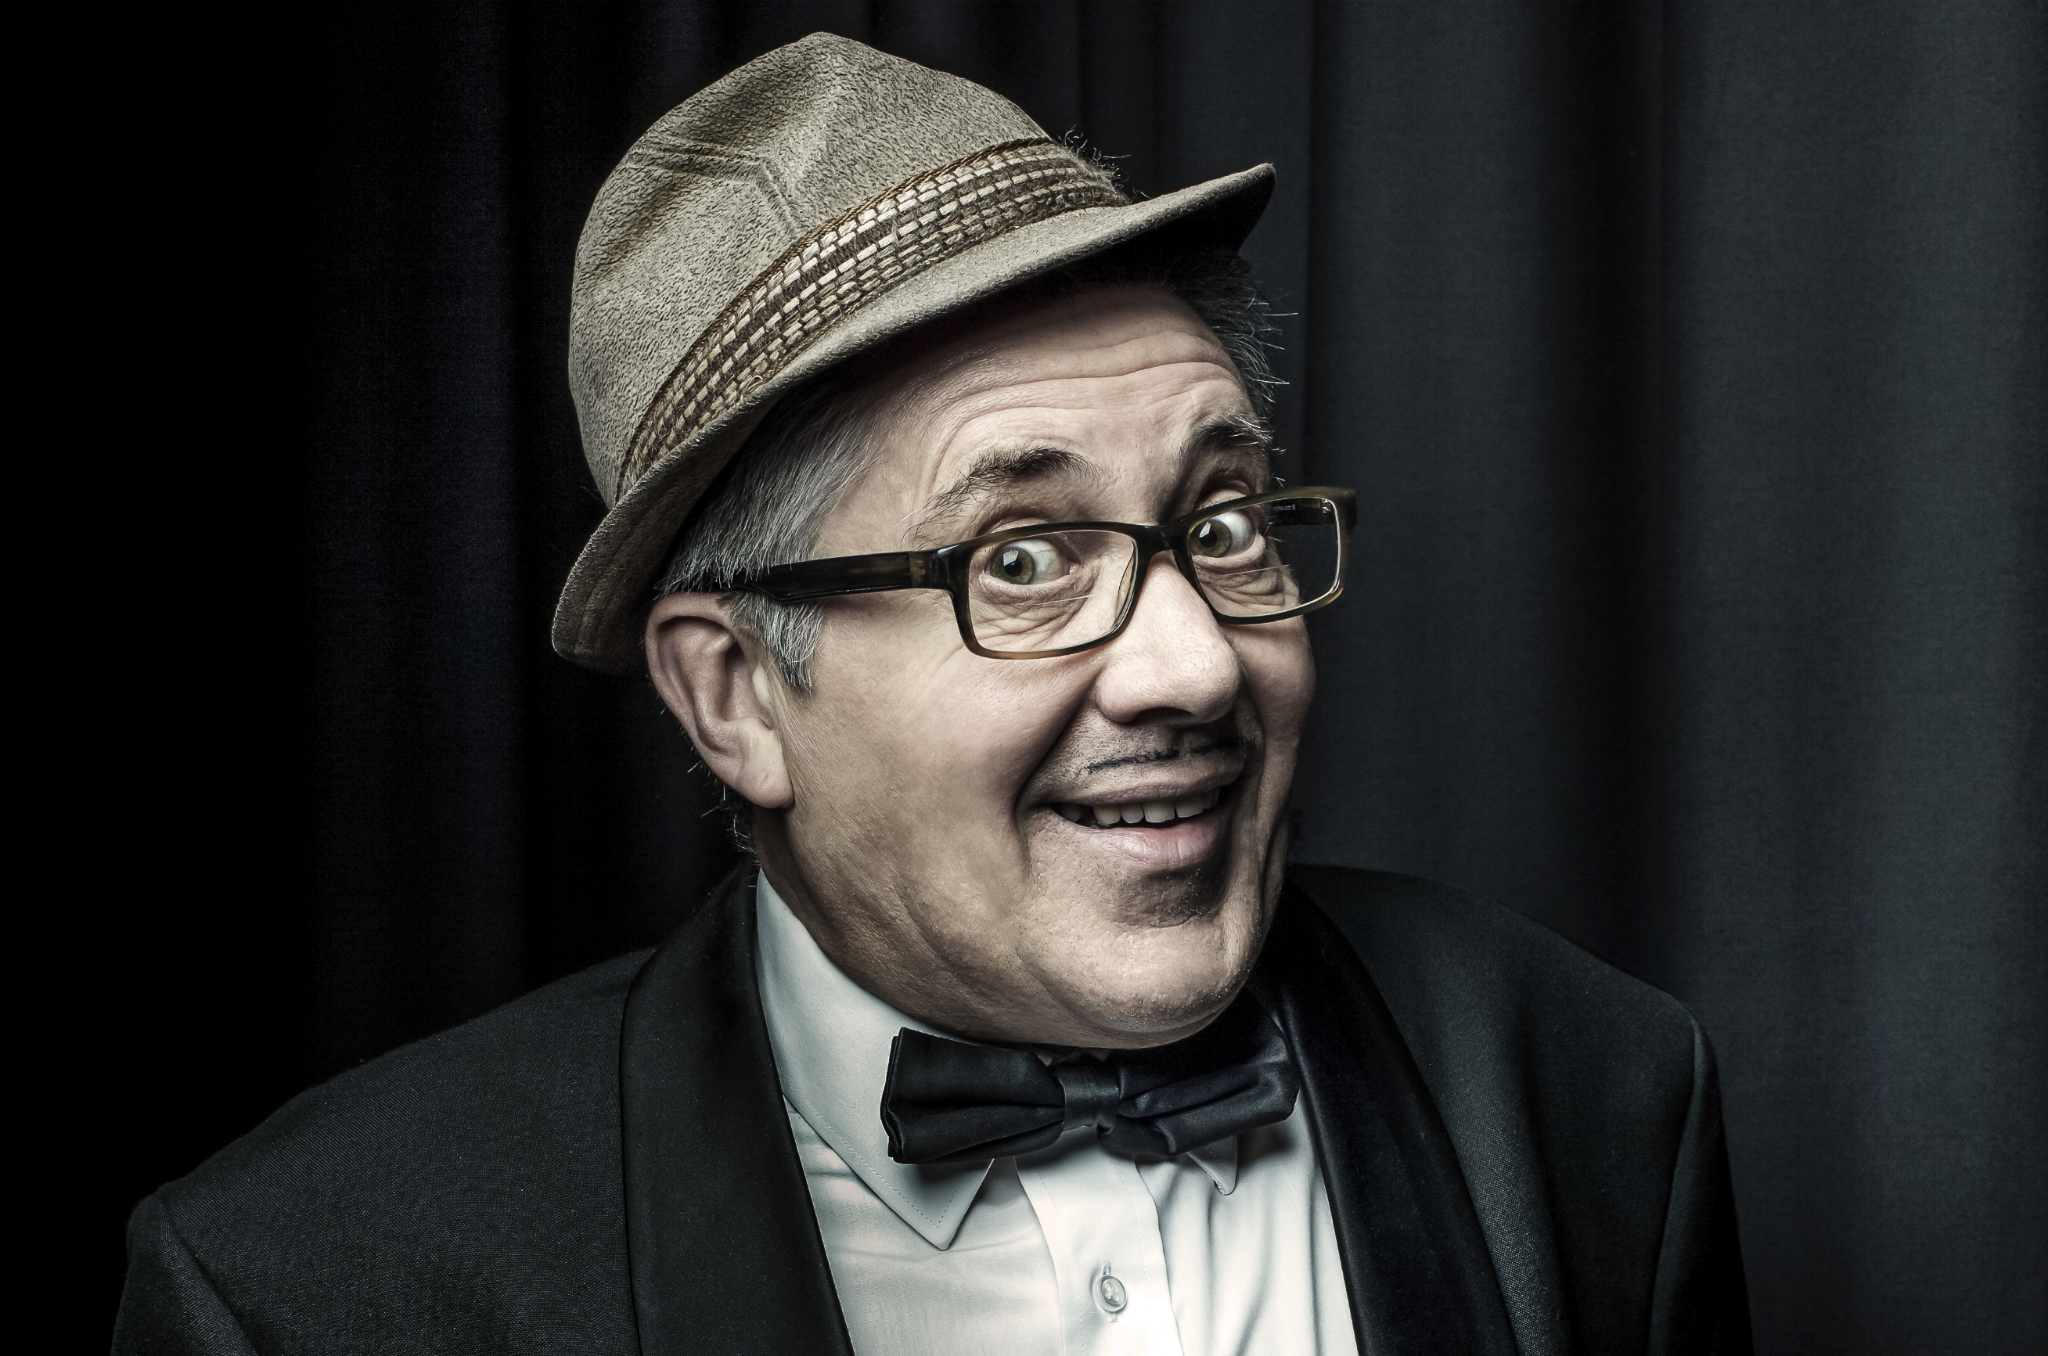 count arthur strong press 2014